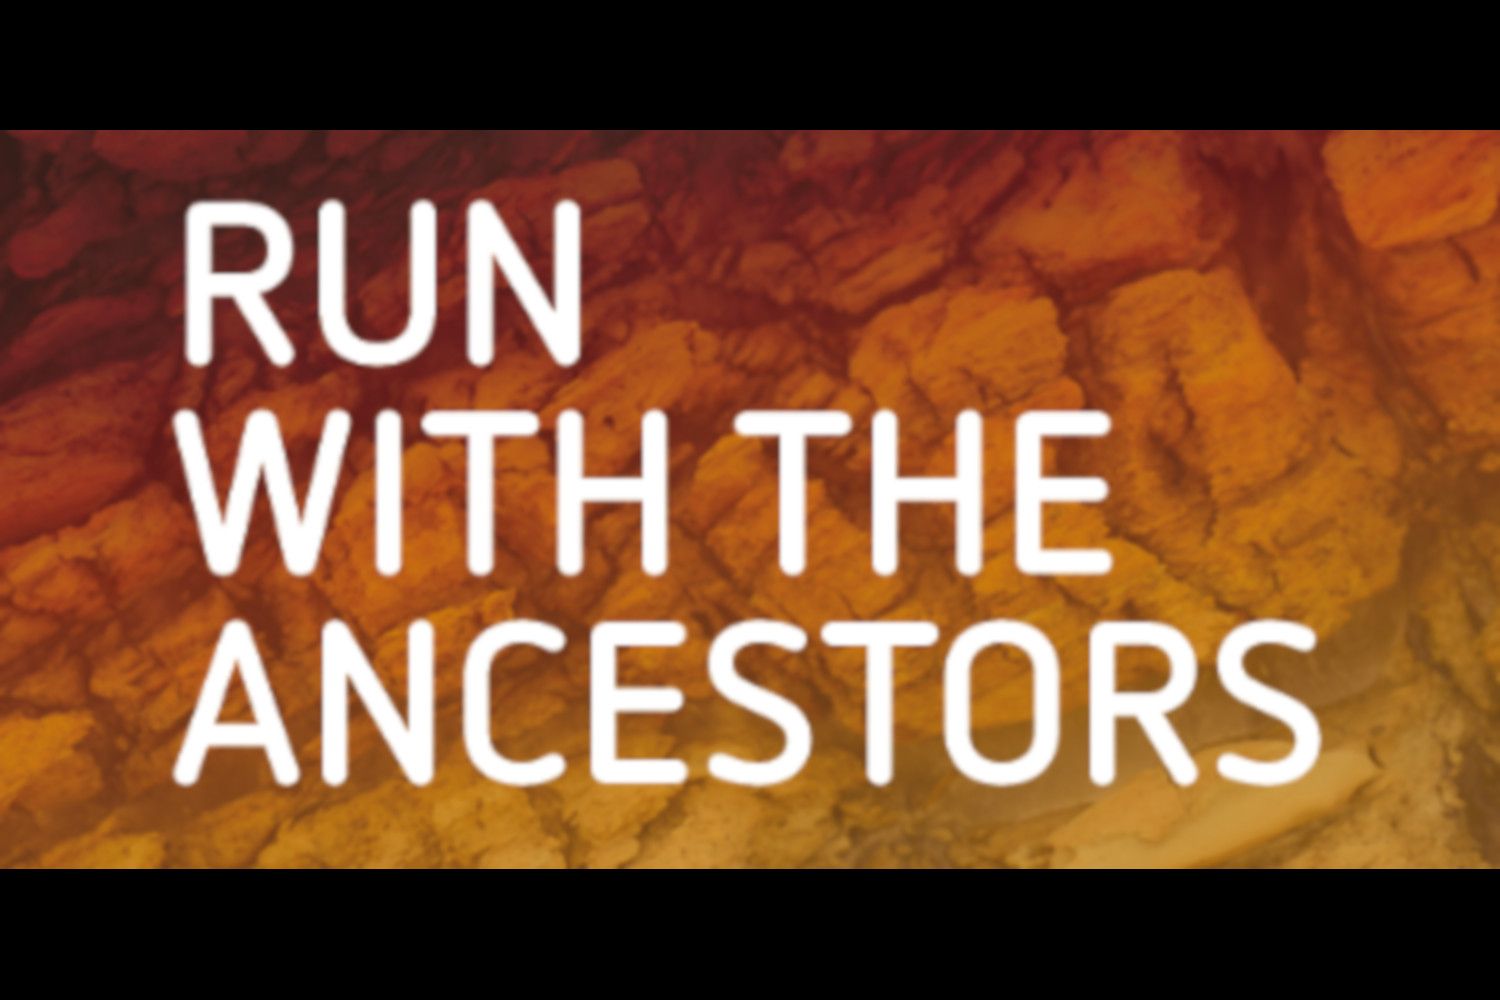 Run with the ancestors British Science Association rac